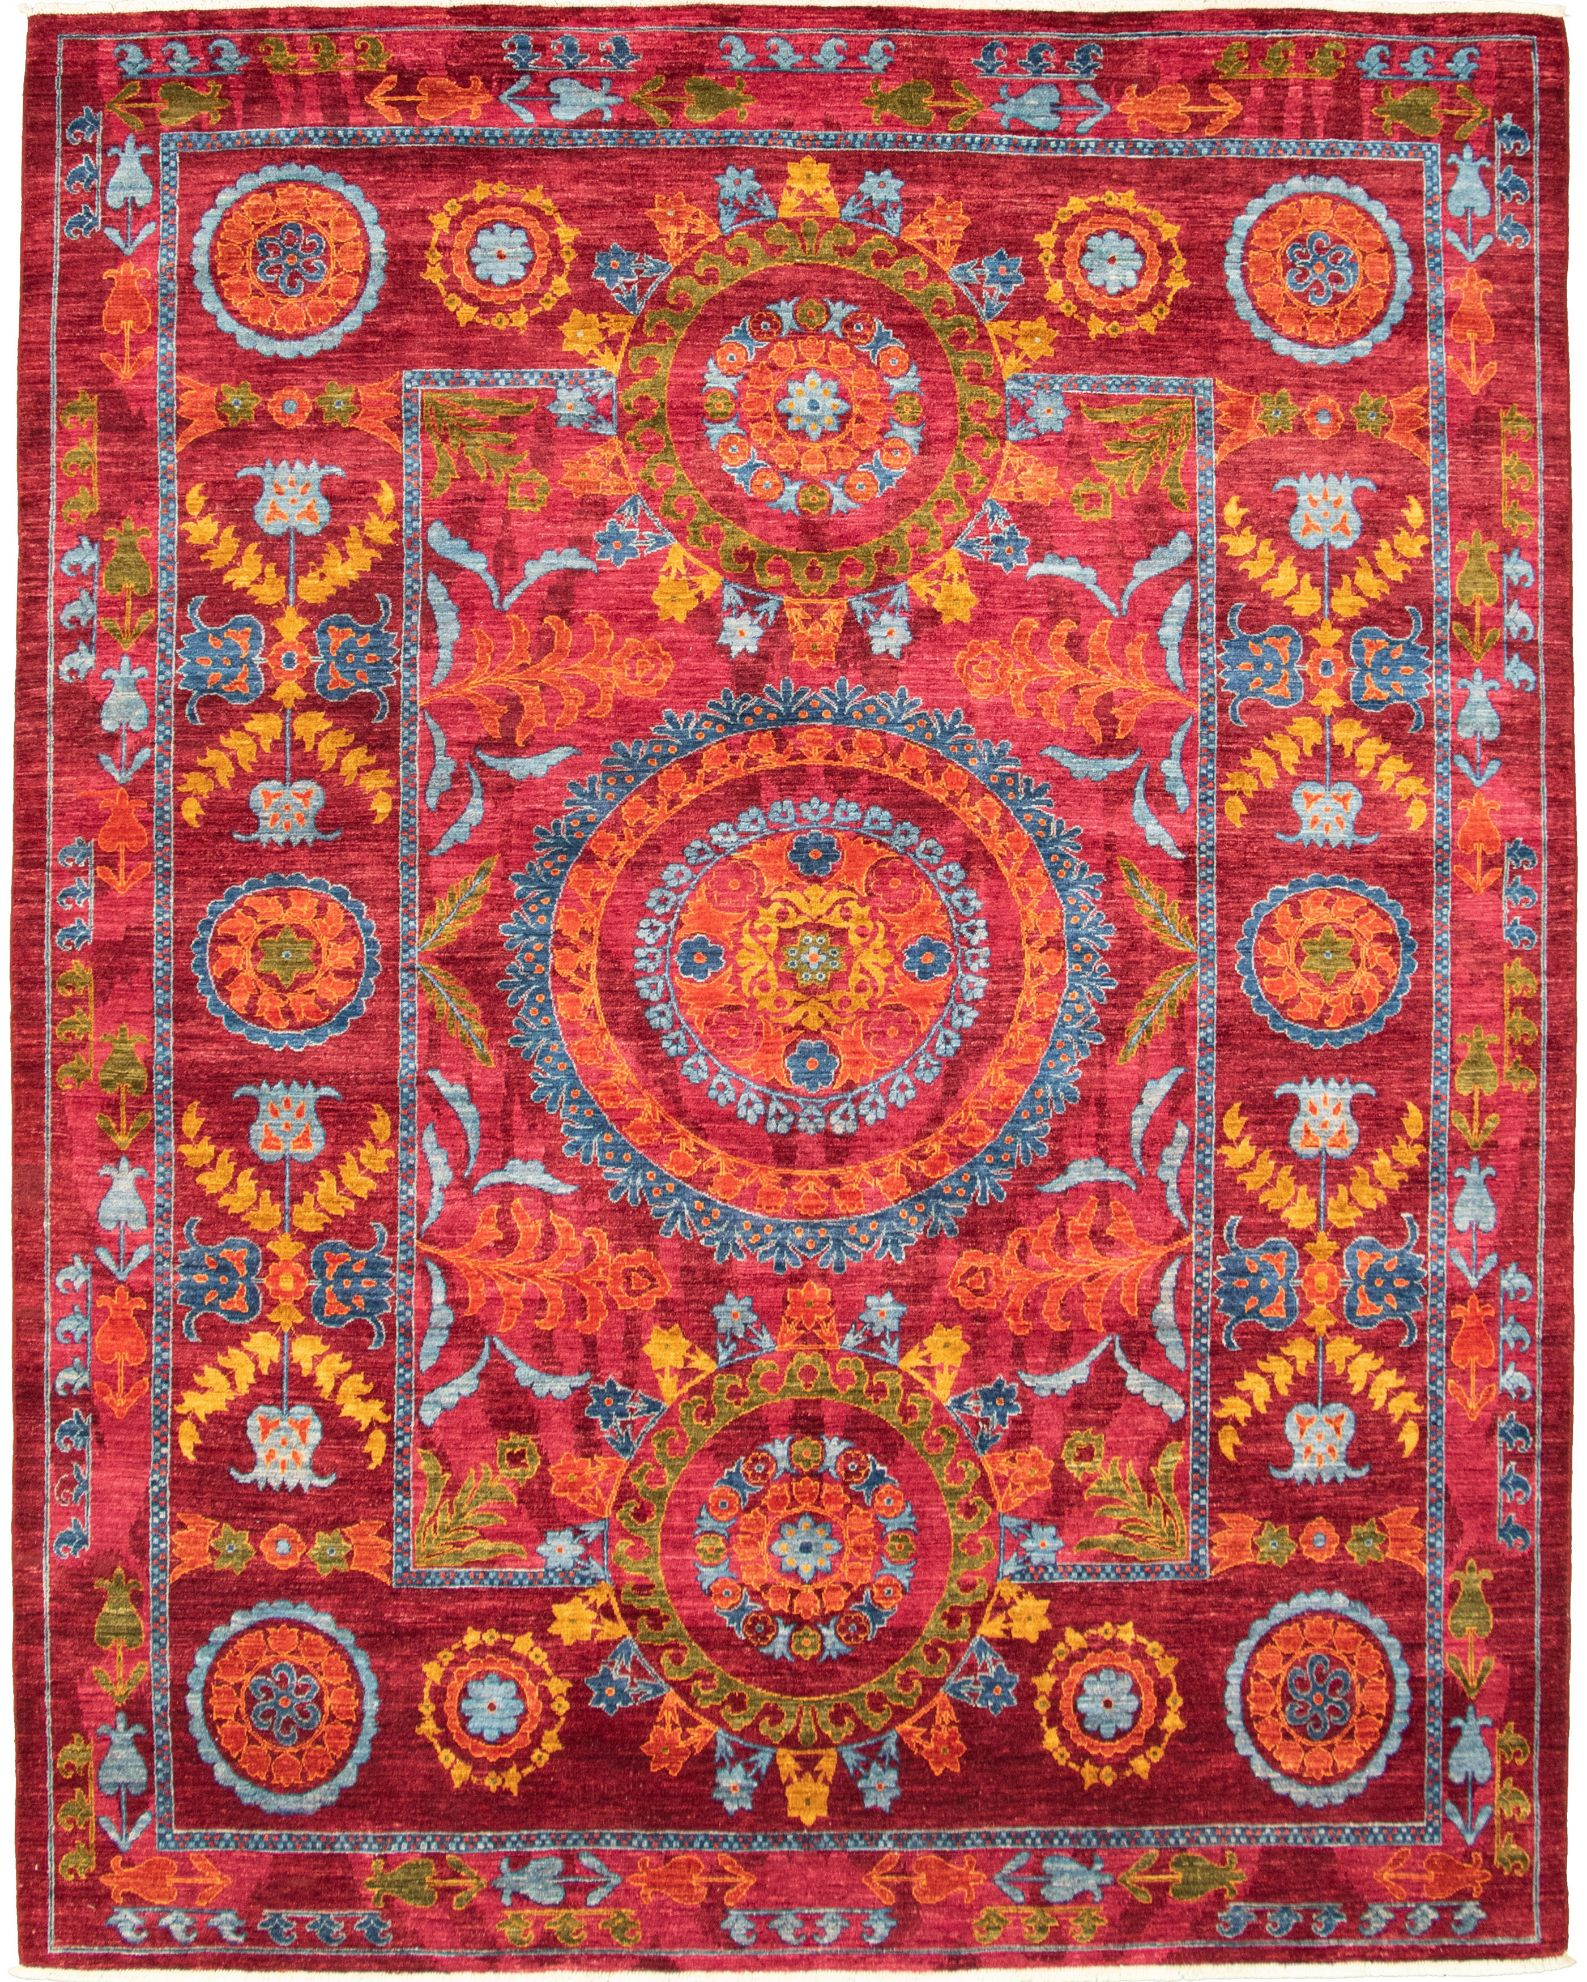 """Hand-knotted Signature Collection Burgundy Wool Rug 8'3"""" x 10'3"""" Size: 8'3"""" x 10'3"""""""